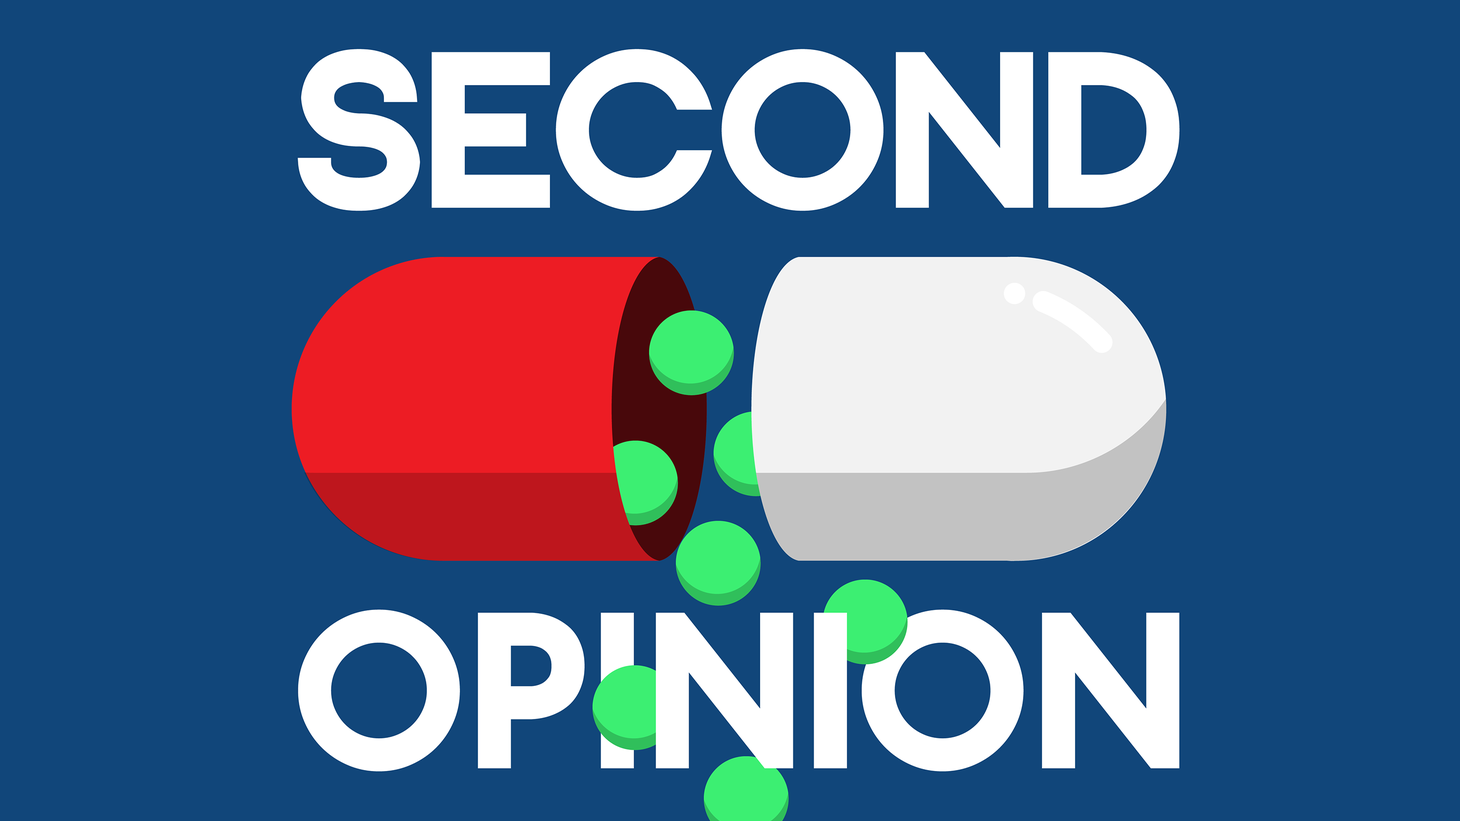 Why can't we develop a fair, honest and unbiased way to conduct research on the effectiveness and safety of medications?